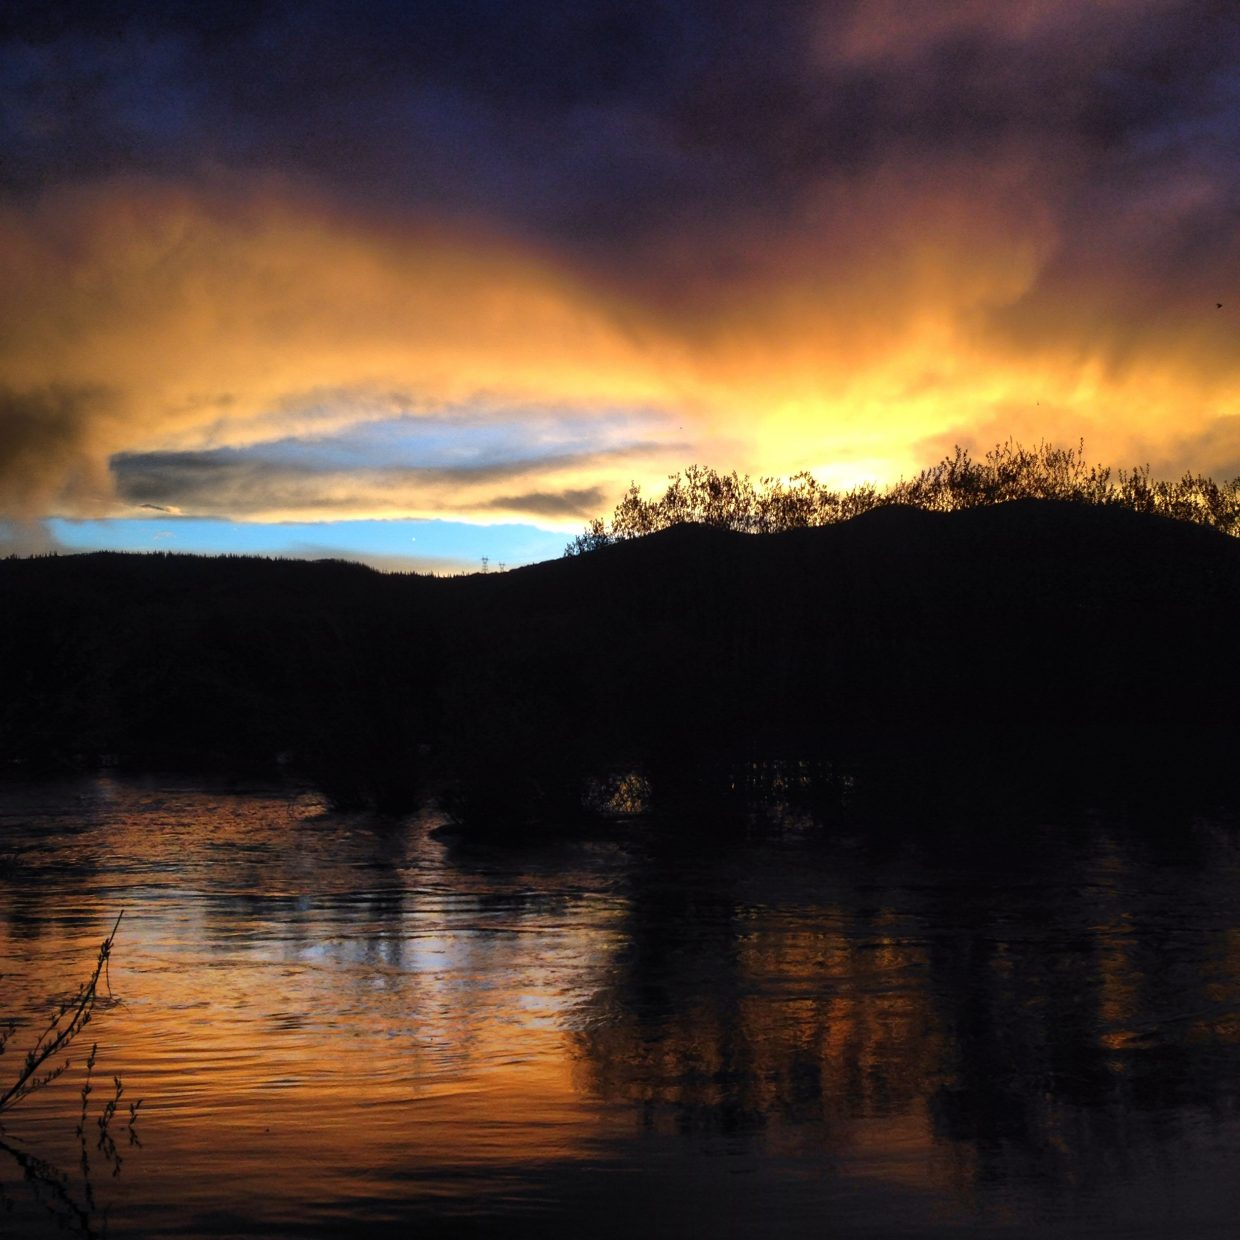 Sunset over Walton Creek. Submitted by: Chris Thomas